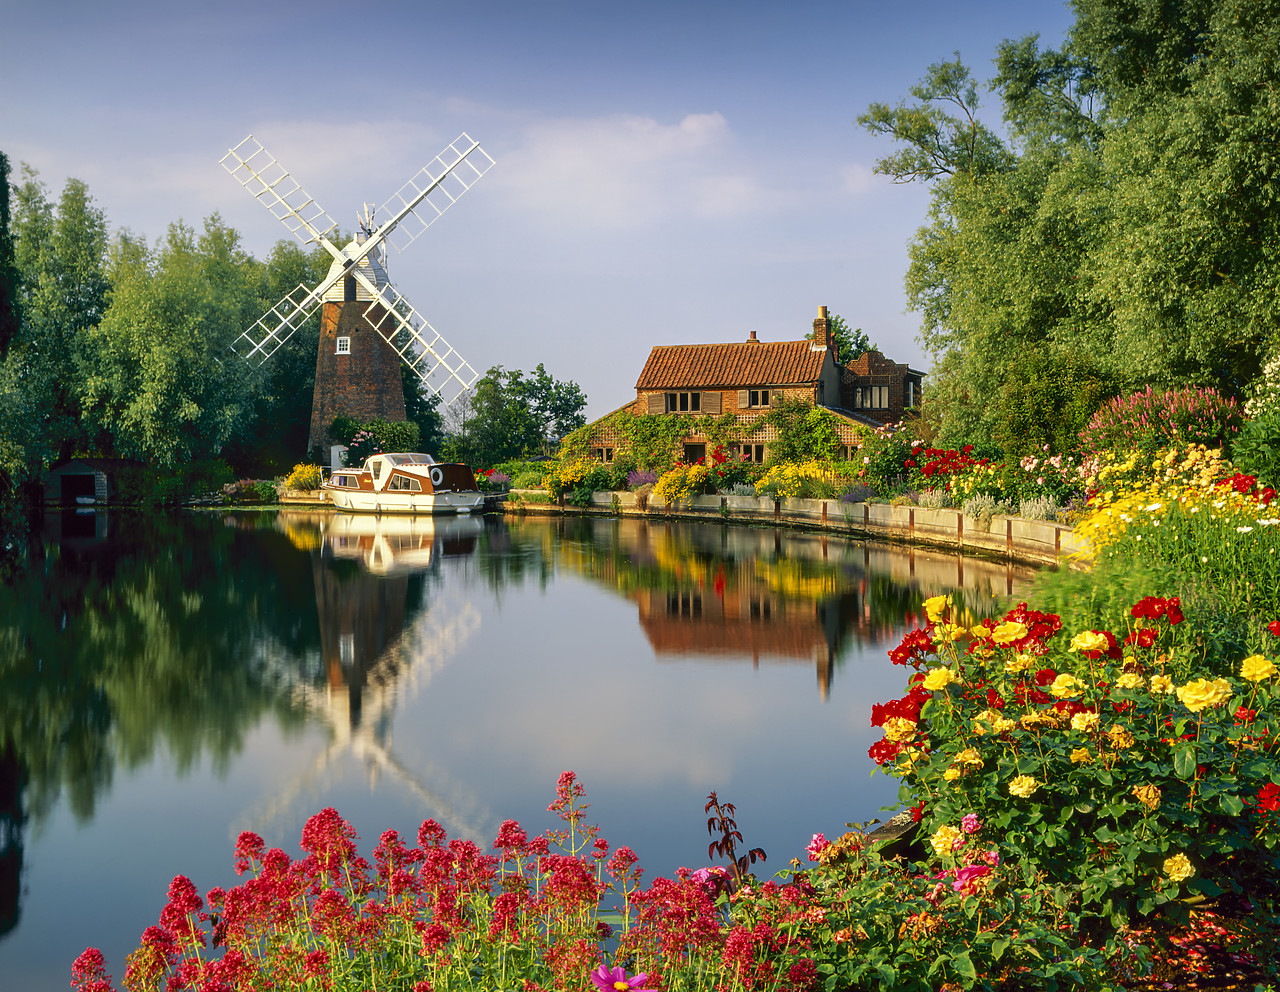 #955595-2 - Hunset Mill on the River Ant, Norfolk, England